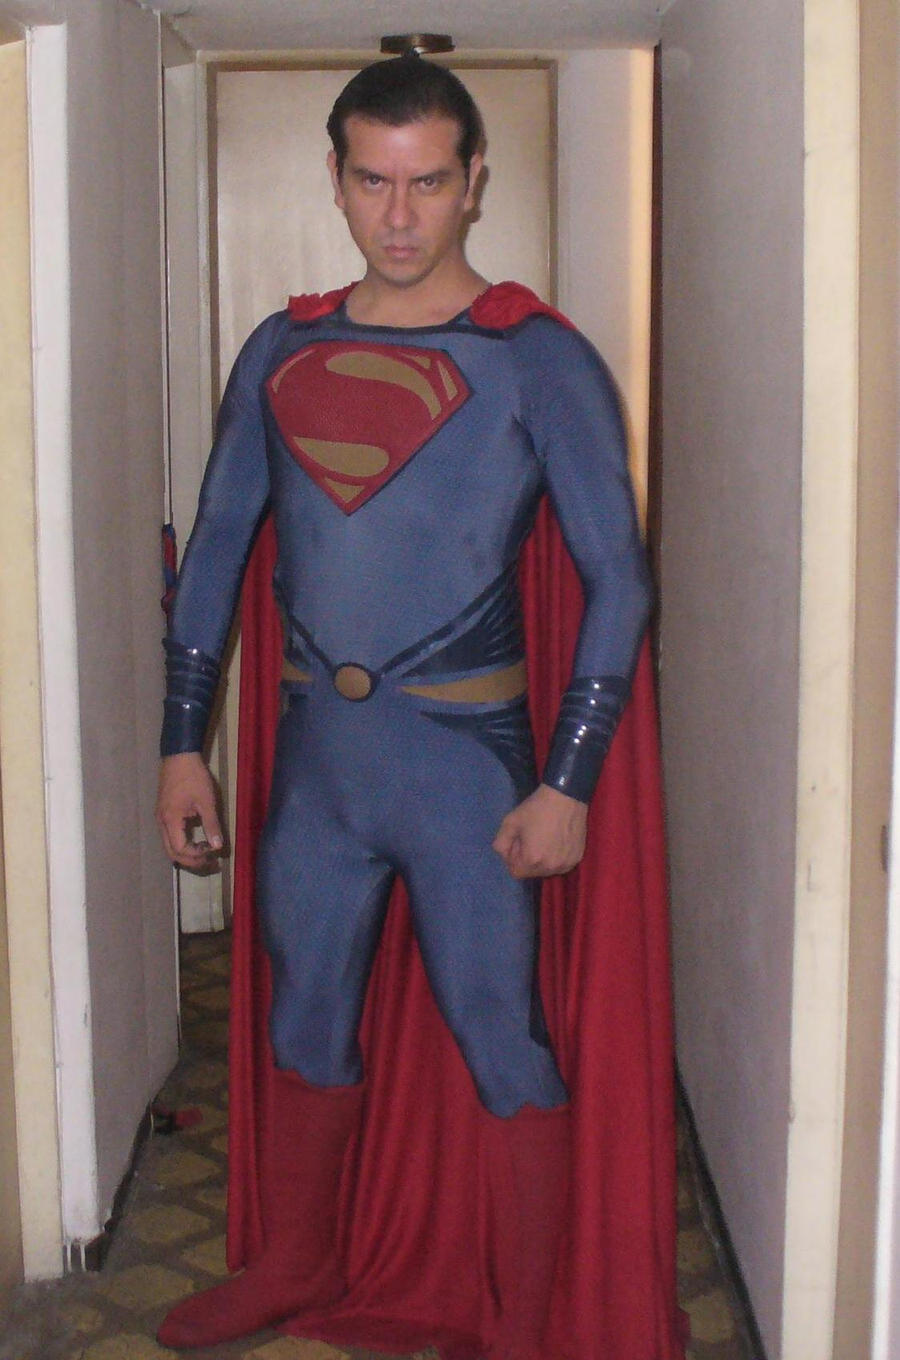 ... Man of Steel Costume by Kryptoniano  sc 1 st  DeviantArt & Man of Steel Costume by Kryptoniano on DeviantArt